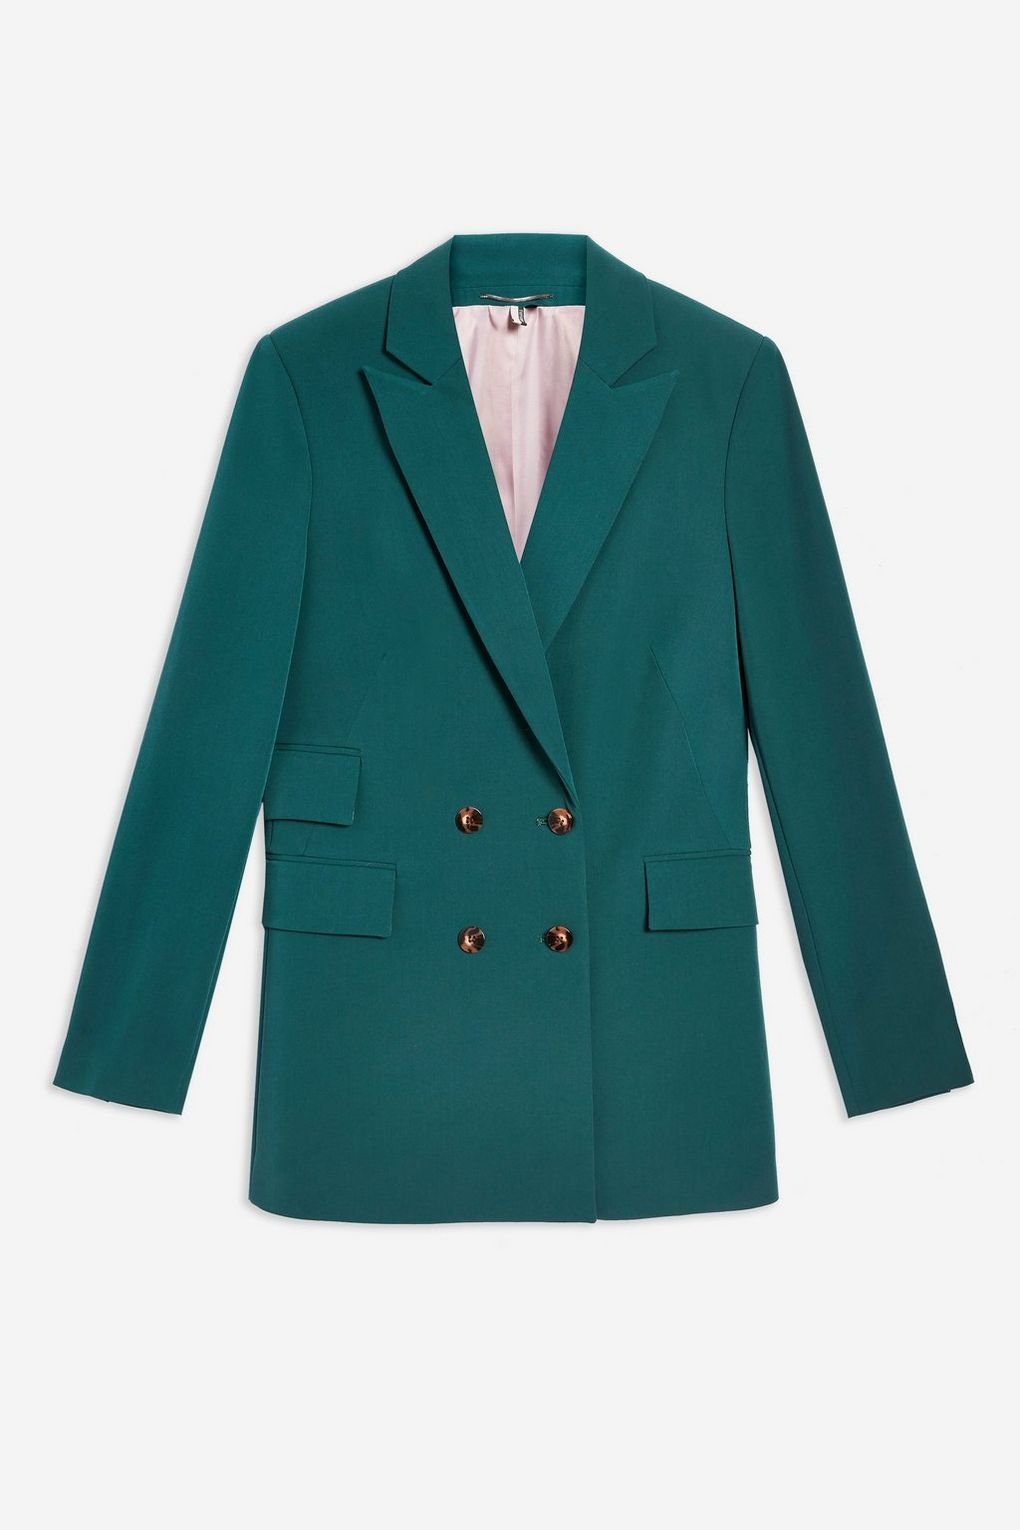 Dark Green Suit - Suits & Co-ords - Clothing - Topshop